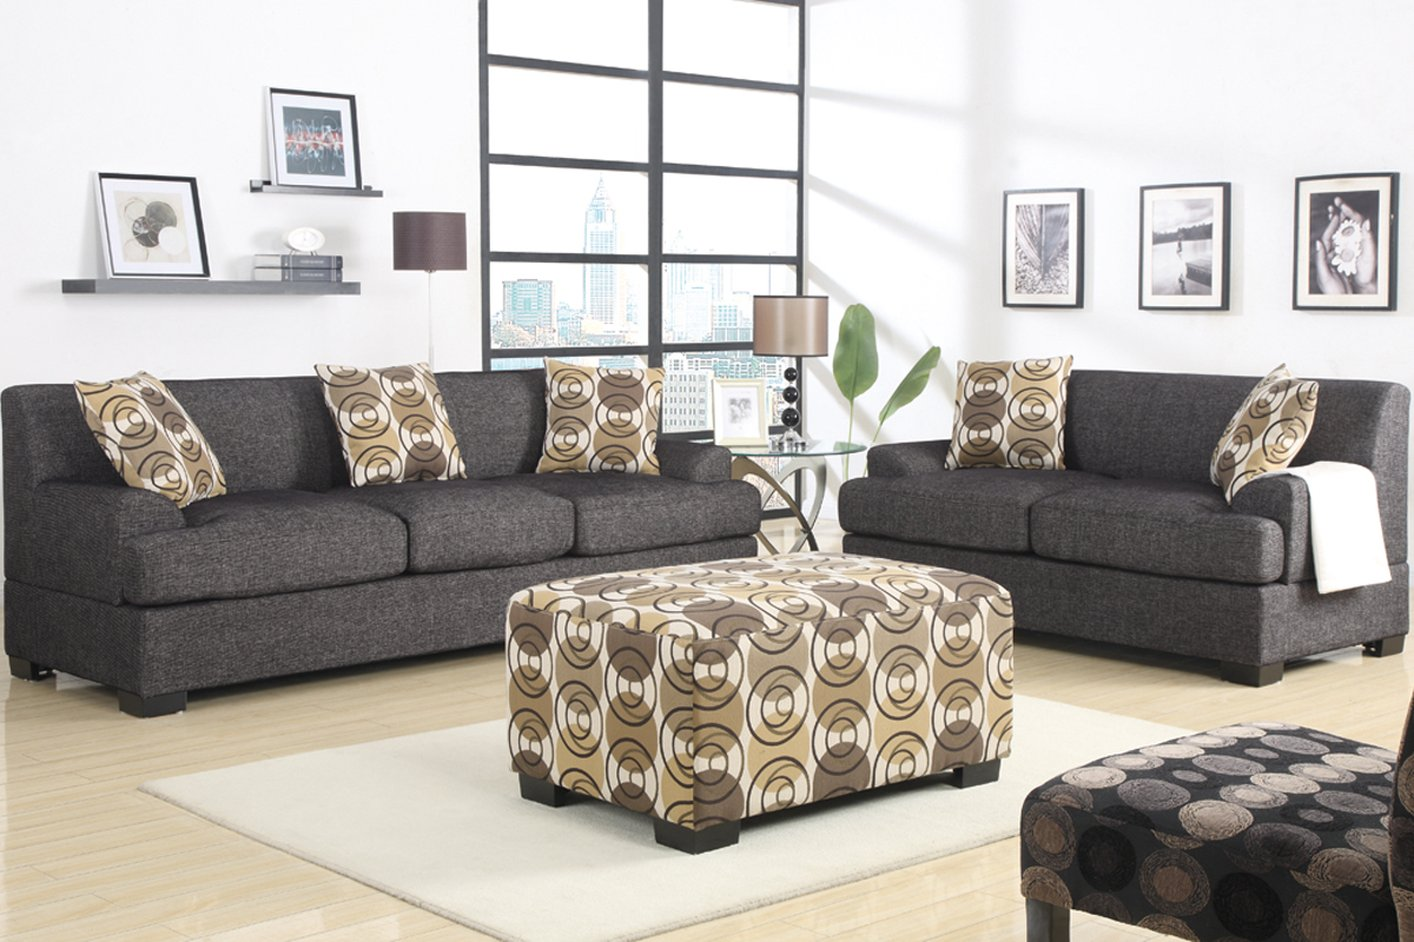 Grey Fabric Chaise Lounge